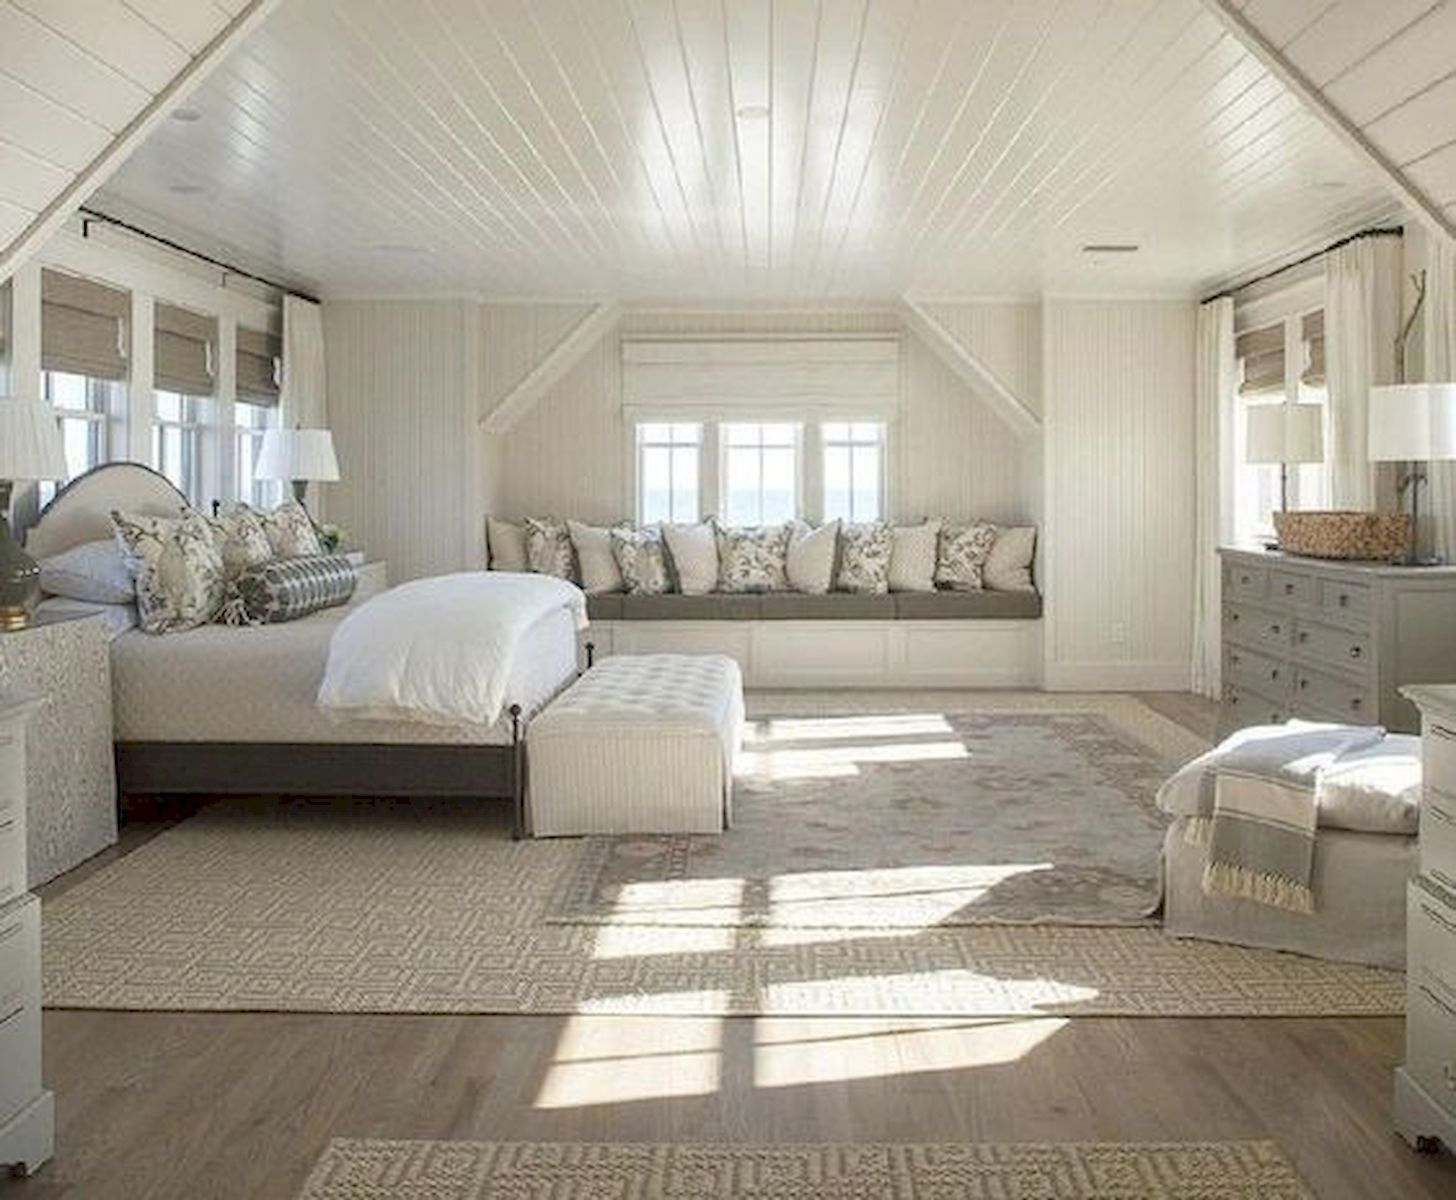 40 Awesome Attic Bedroom Design and Decorating Ideas (29)